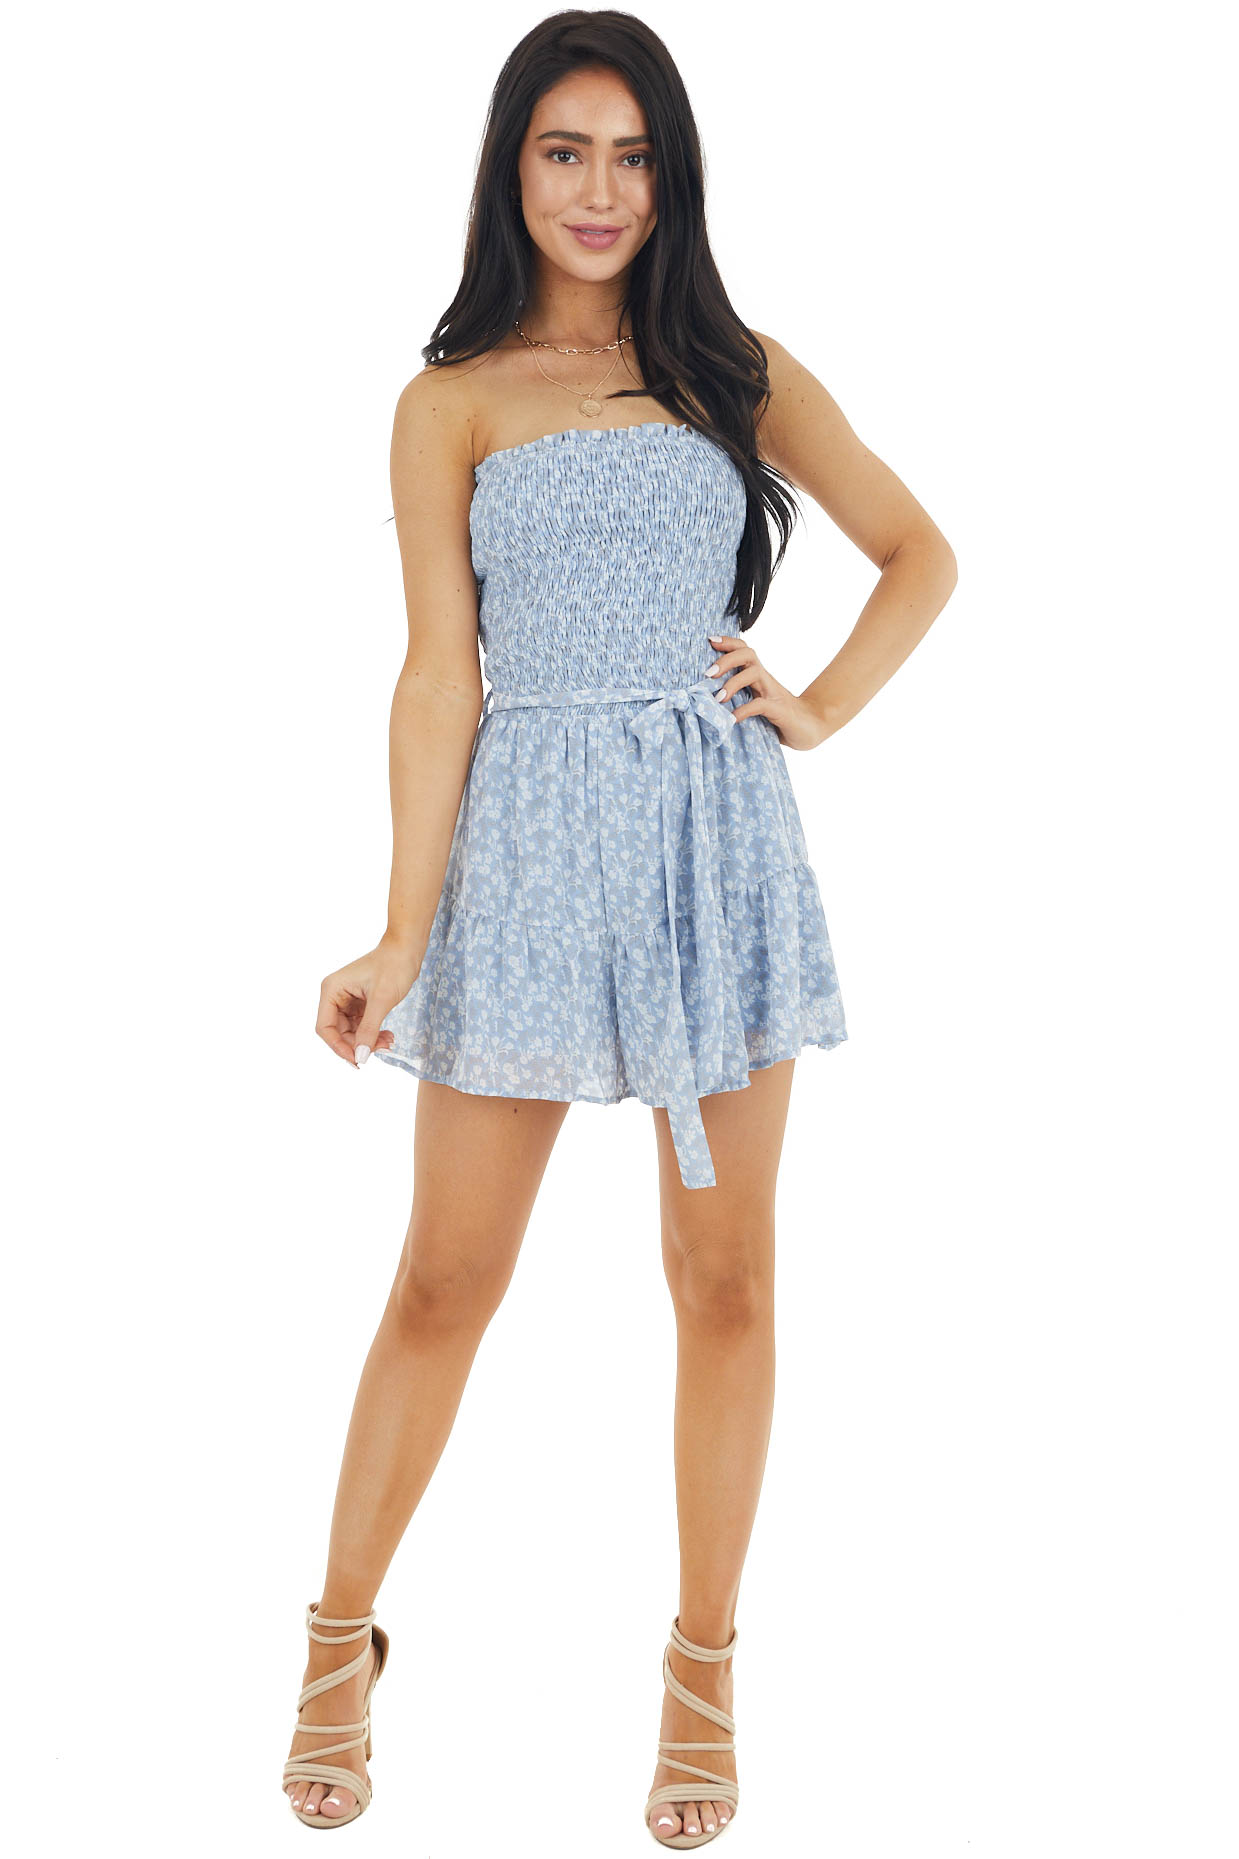 Dusty Blue Ditsy Floral Strapless Romper with Smocked Detail